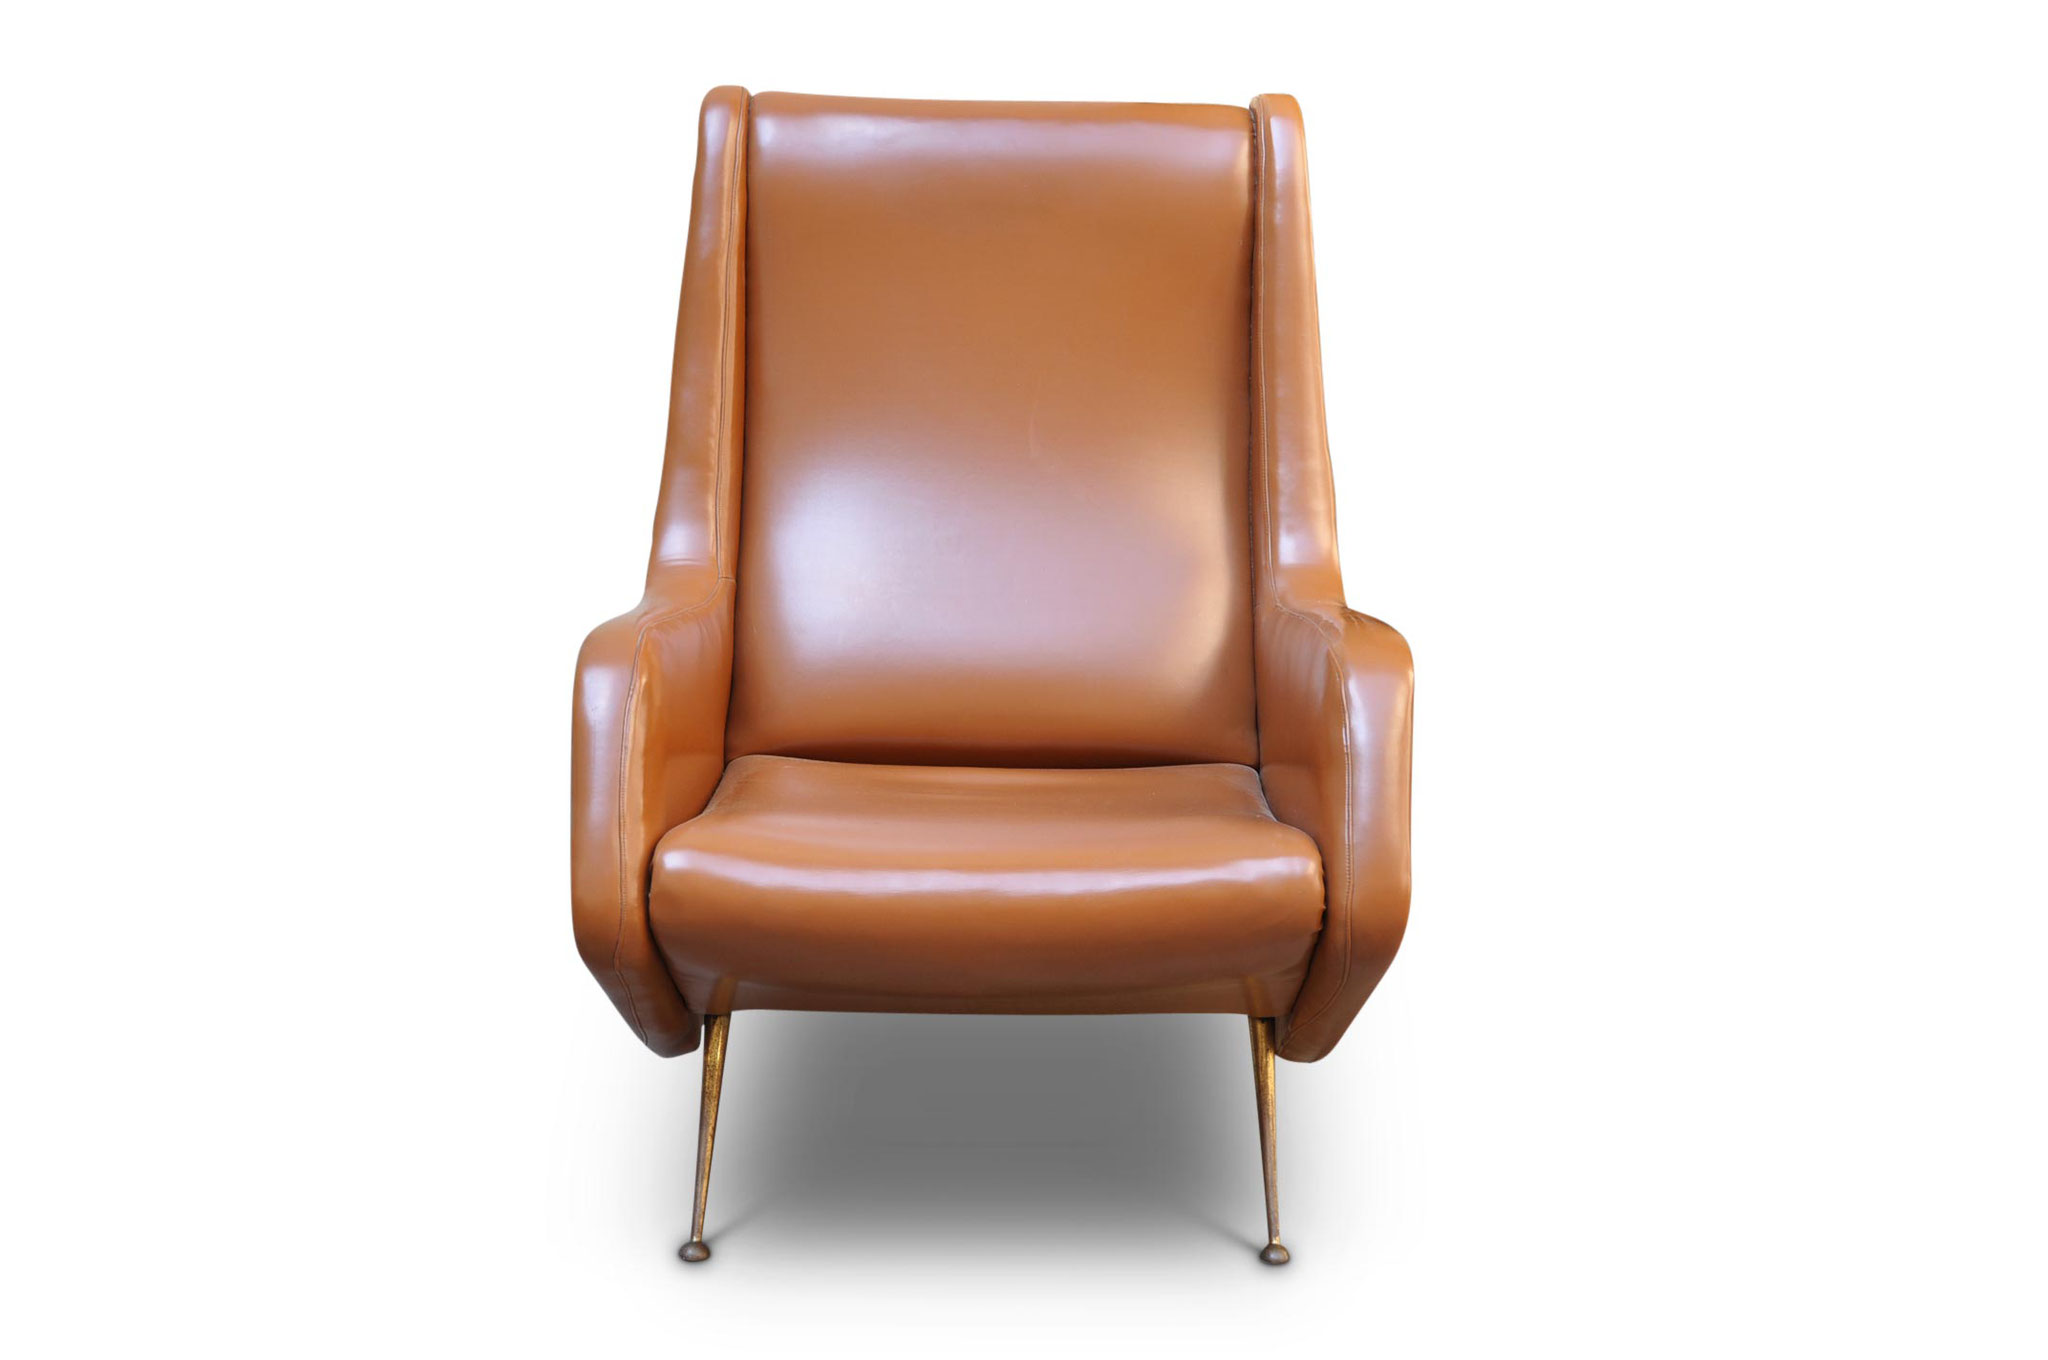 Poltrone Aldo Morbelli chairs